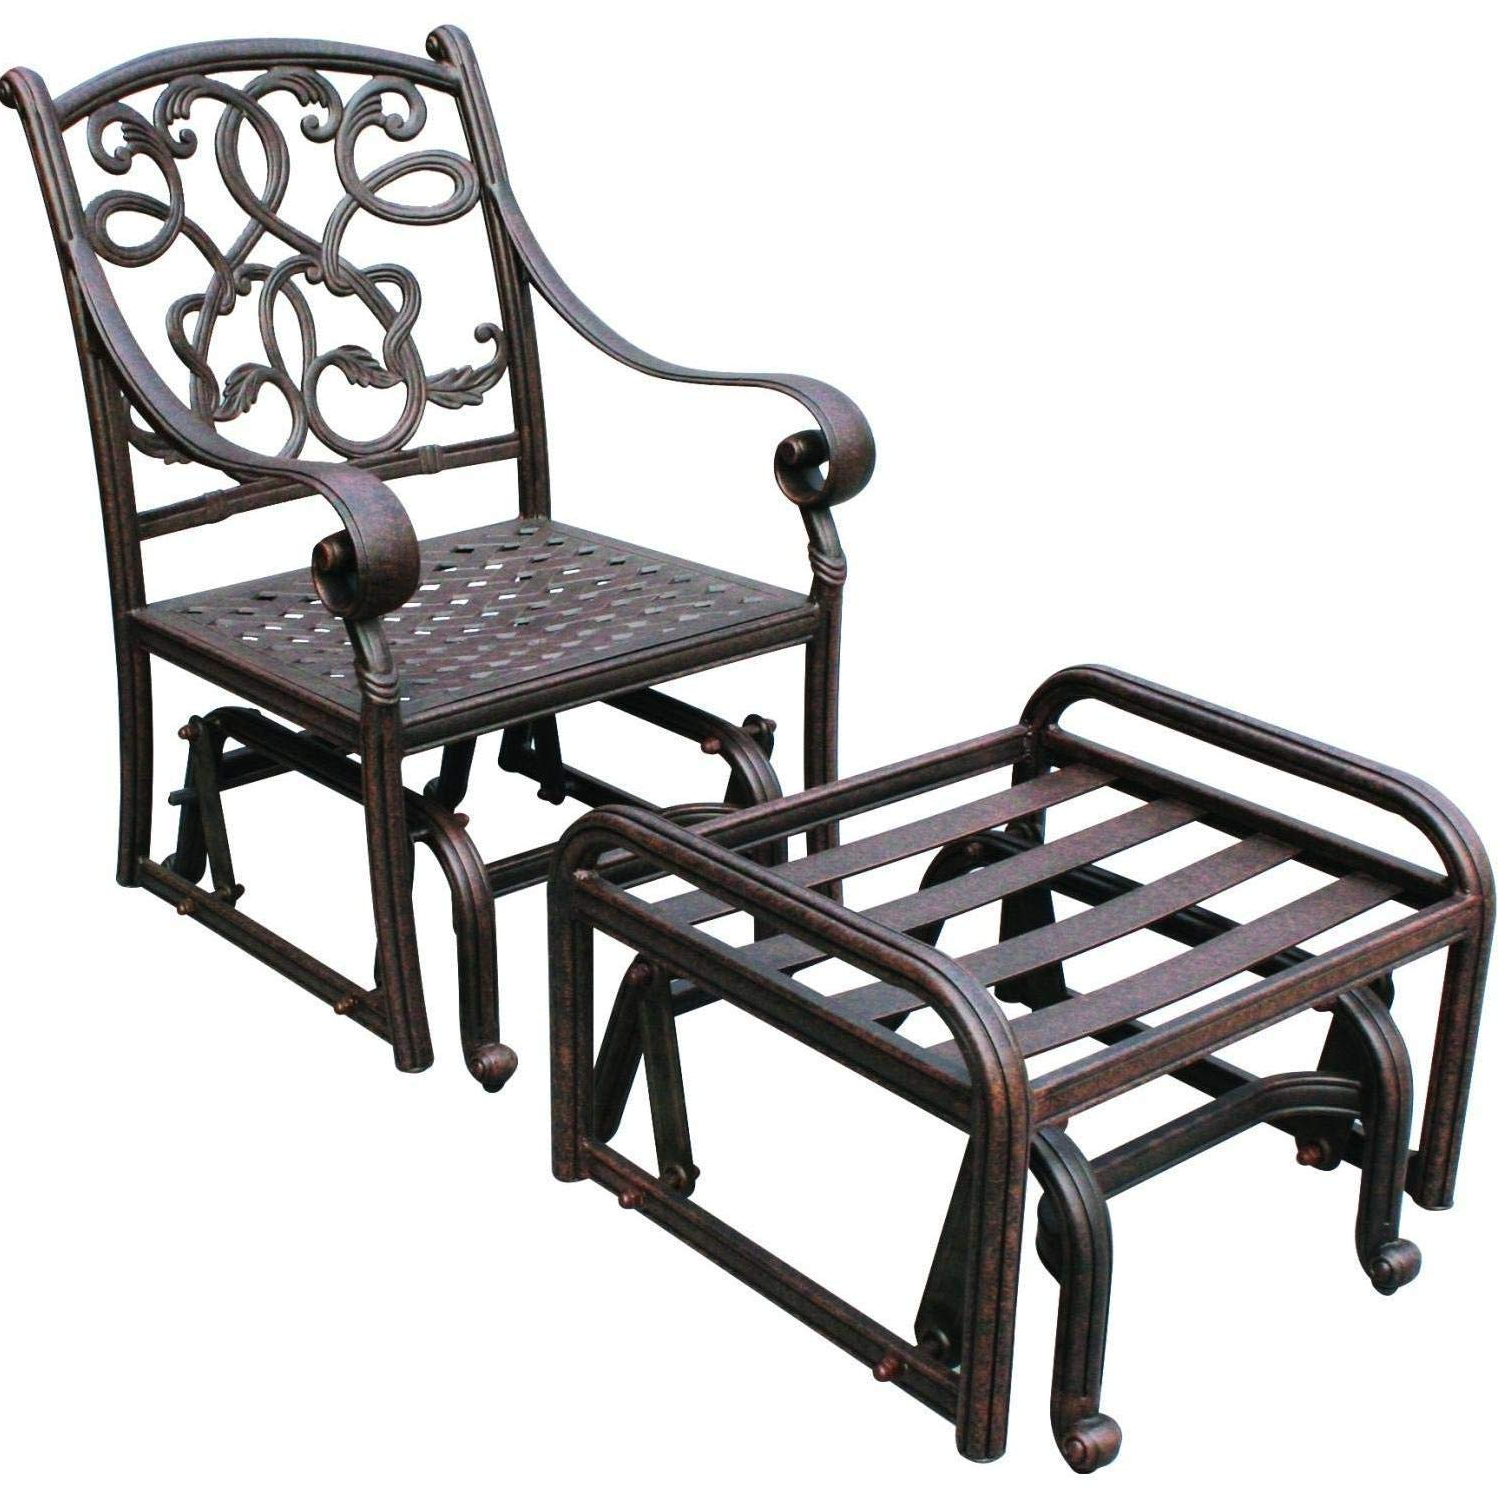 Latest Aluminum Glider Benches With Cushion In Amazon : Darlee Santa Monica Cast Aluminum Patio Glider (View 18 of 30)